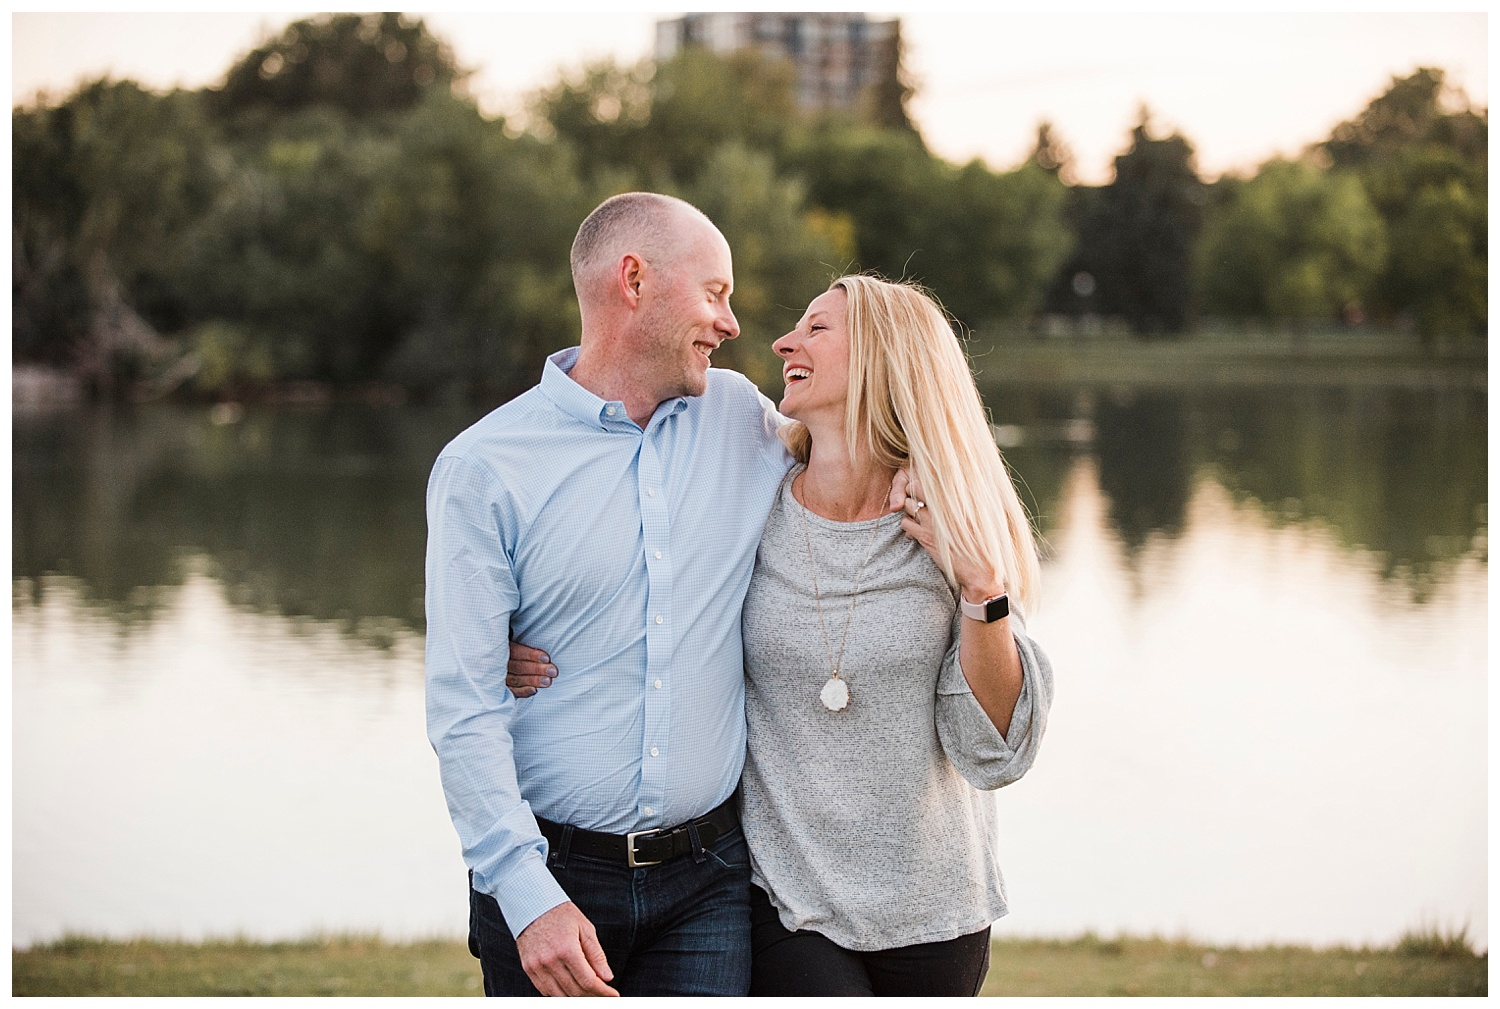 City_Park_Denver_Colorado_Engagement_Session_Apollo_Fields_Weddings_008.jpg